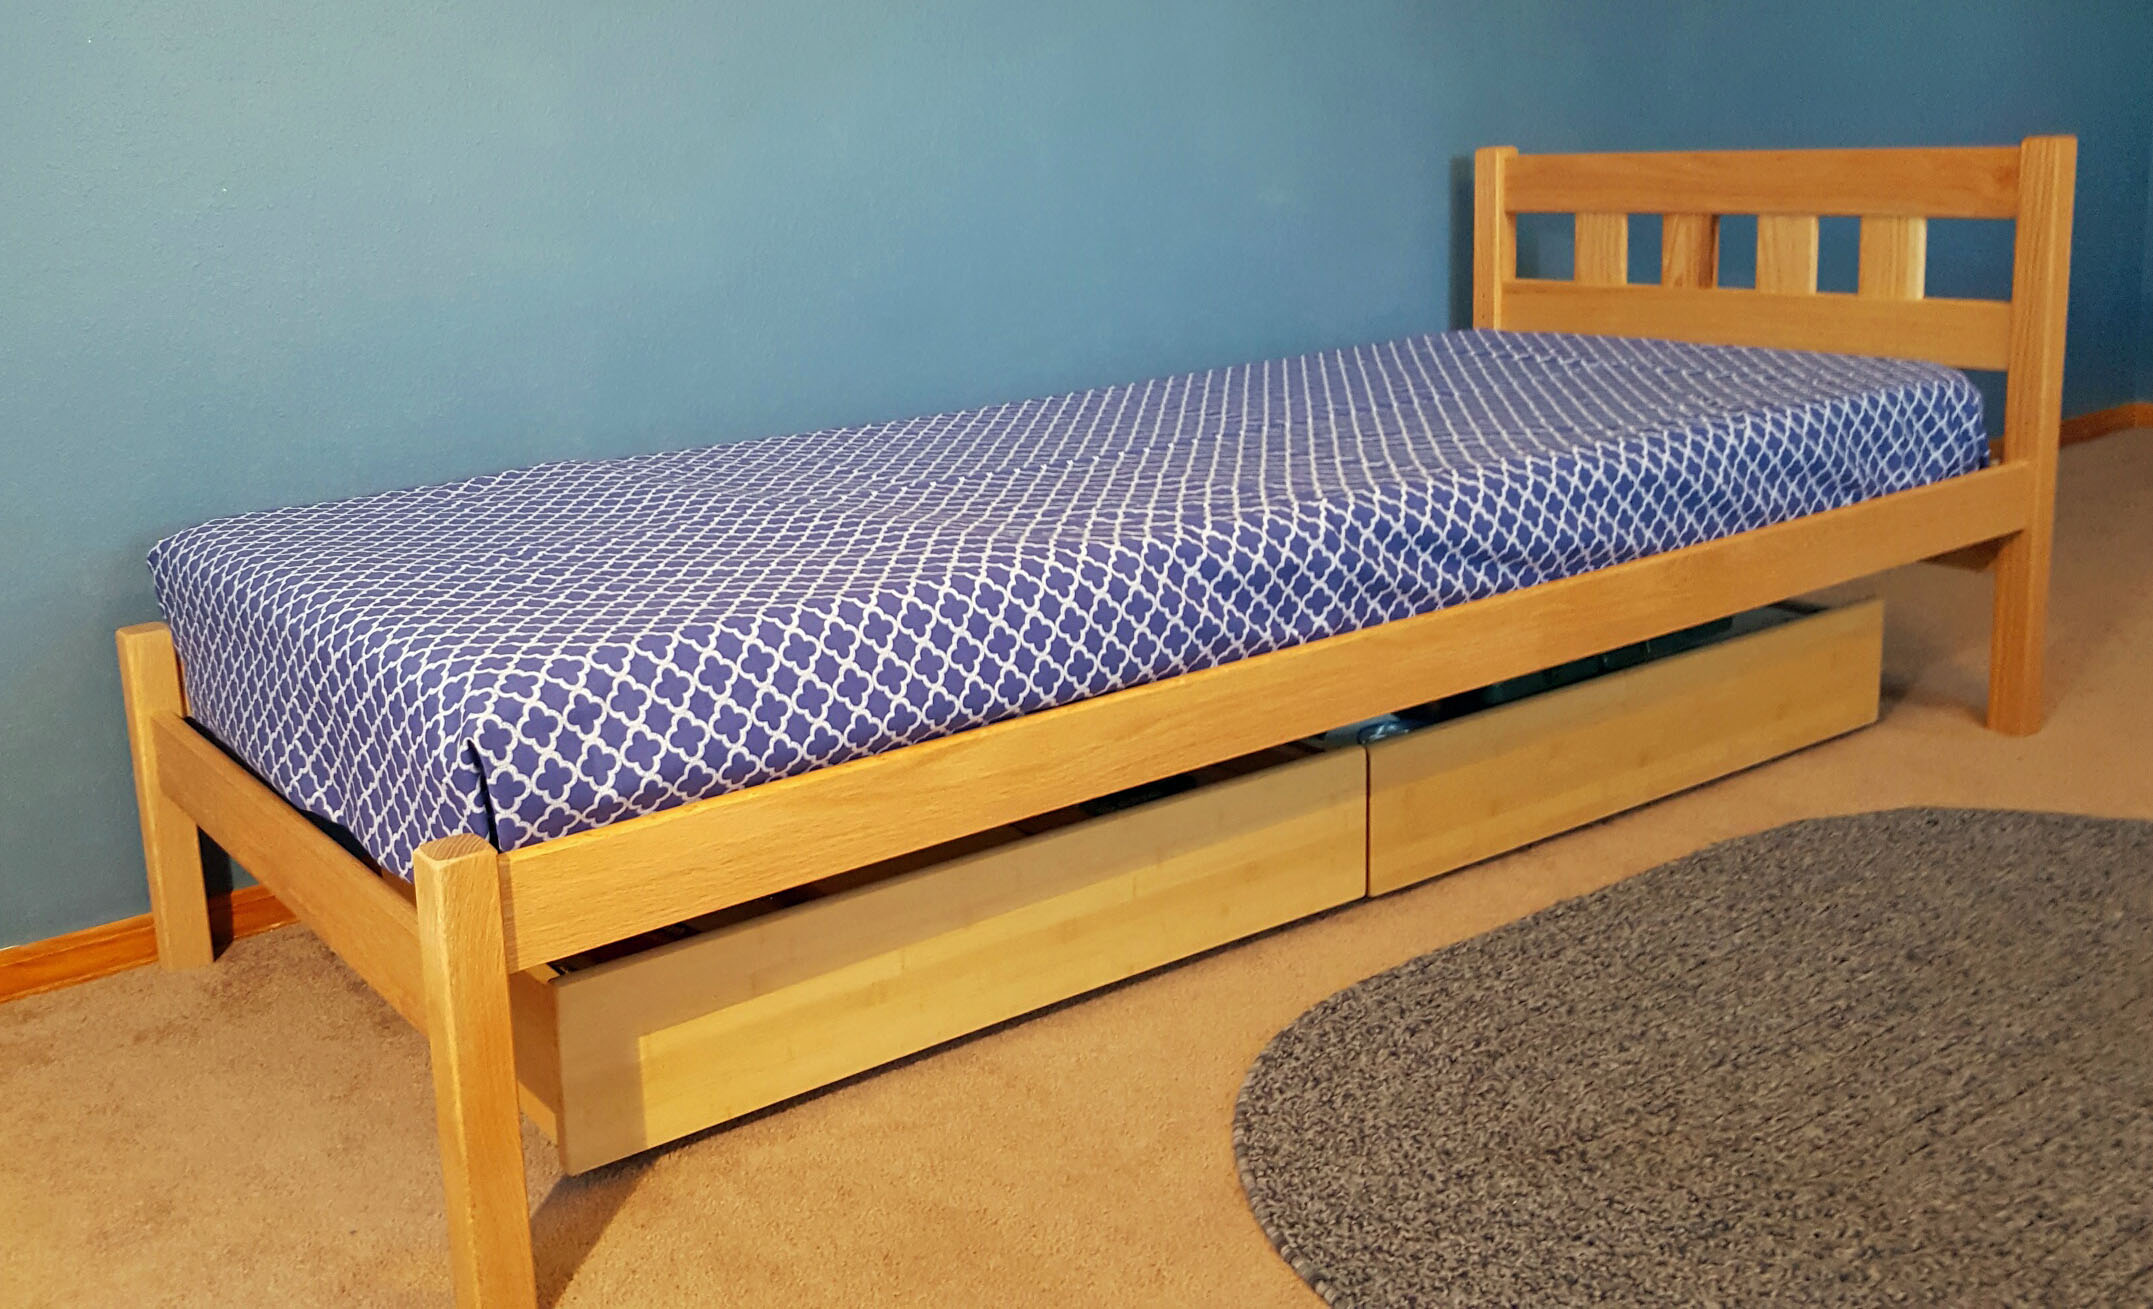 "COT SIZE OAK MISSION BED WITH 28"" LEGS - SHOWN WITH OPTIONAL UNDERBED DRAWERS."